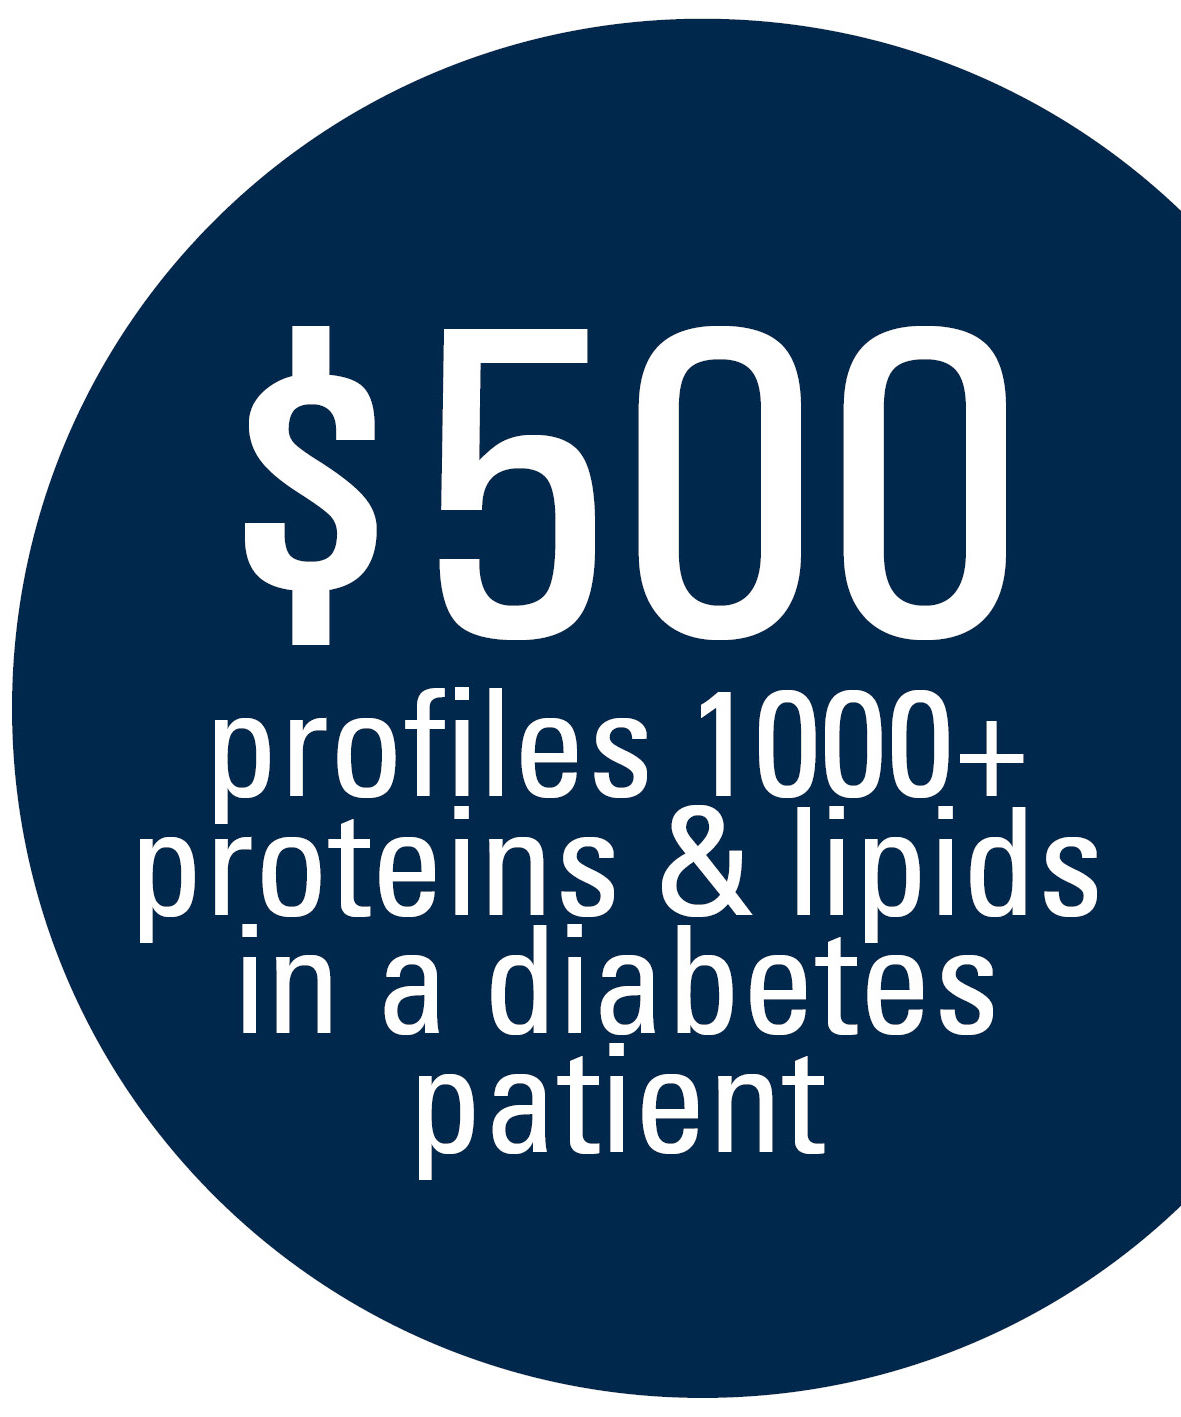 graphic explaining what a $500 donation can do for the NeuroNetwork for Emerging Therapies